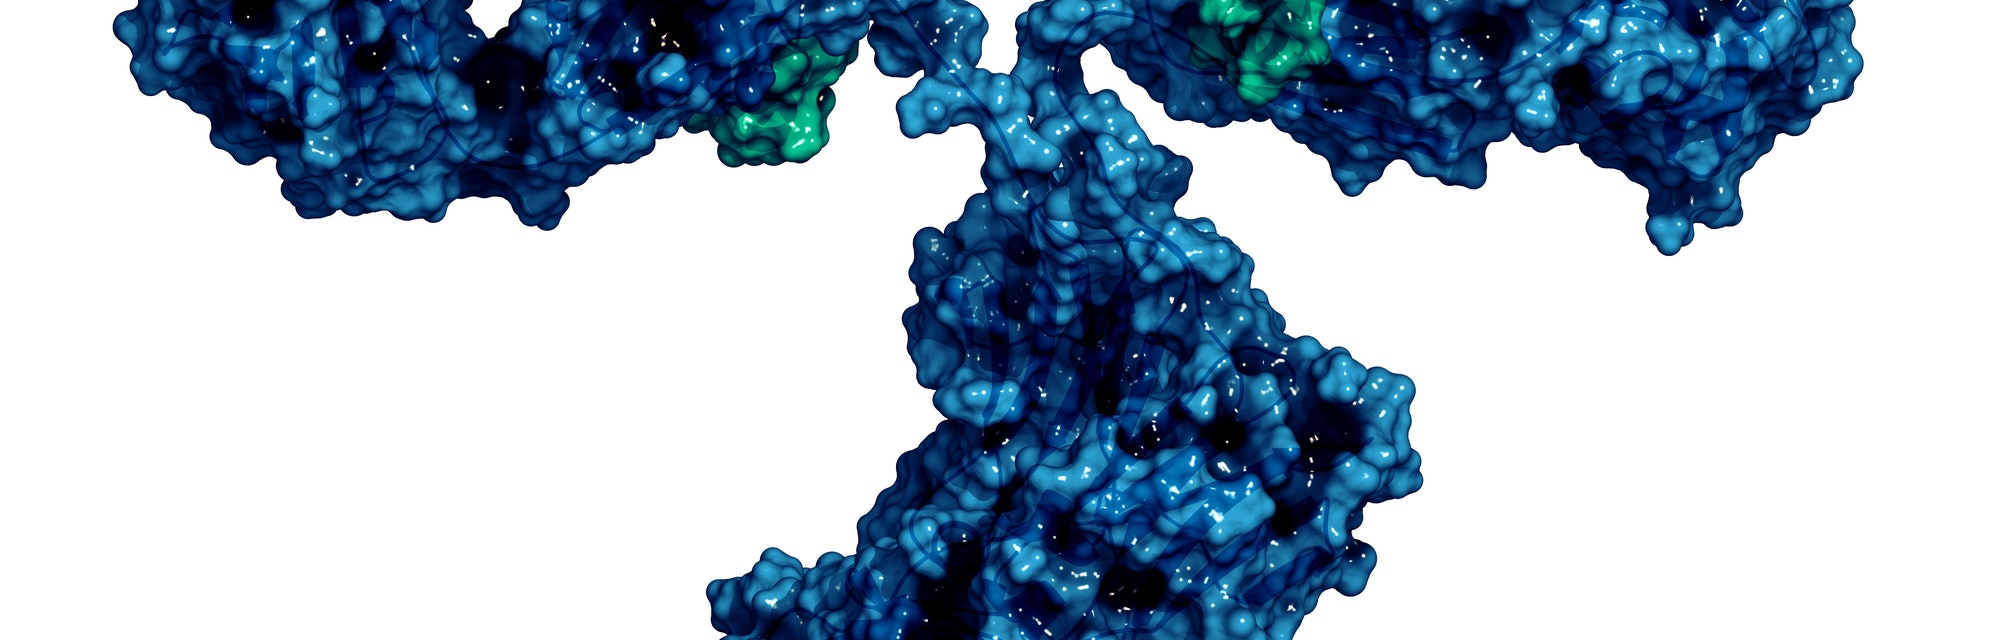 IgG2a monoclonal antibody (immunoglobulin), 3D rendering. Many biotech drugs are antibodies. Cartoon representation combined with semi-transparent surfaces. Heavy chains blue, light chains teal.